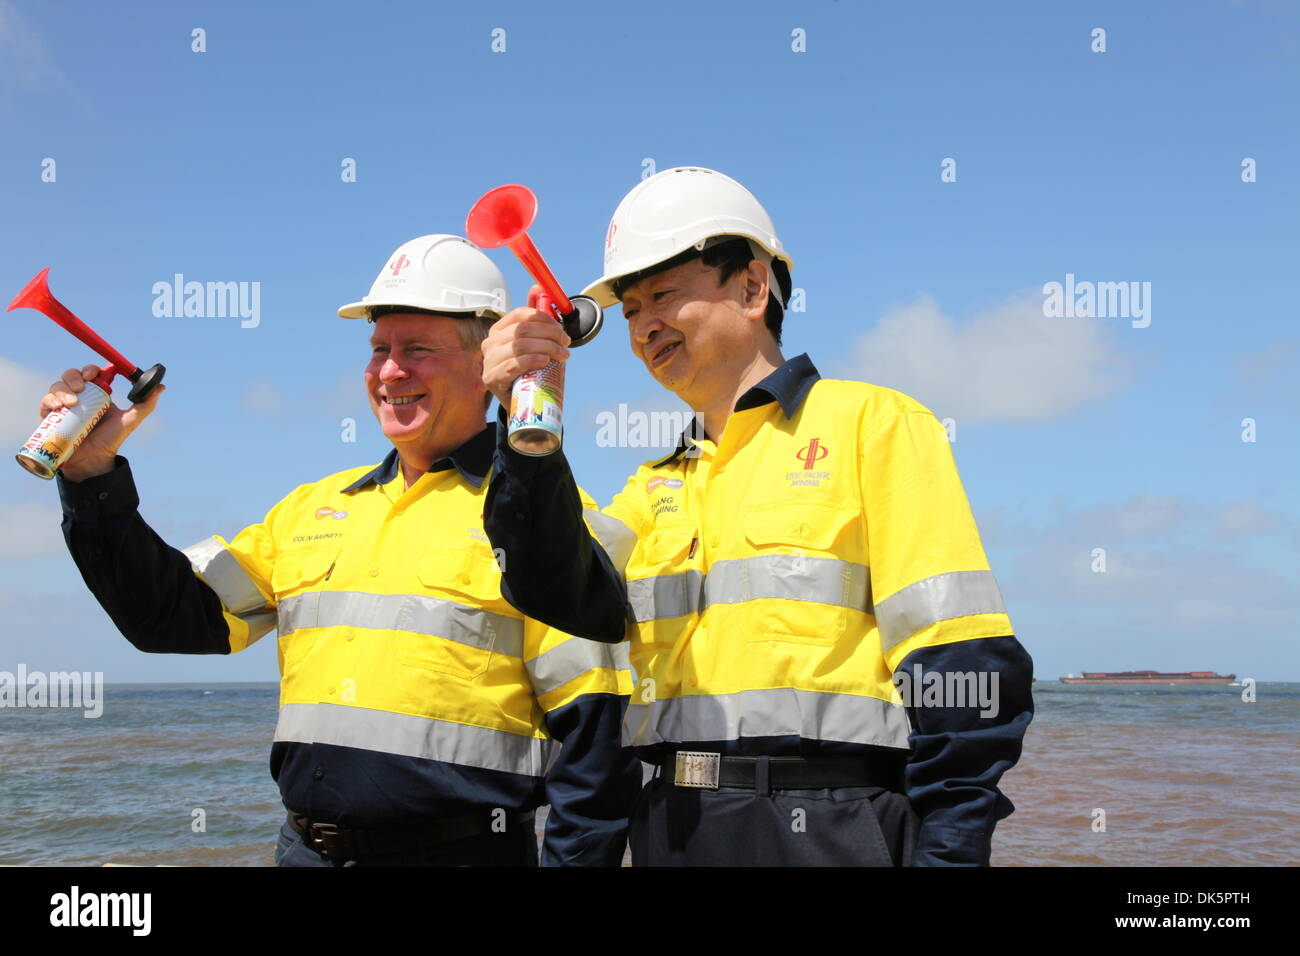 (131203) -- PORT CAPE PRESTON, Dec. 3, 2013 (Xinhua) -- Premier of Western Australia Colin Barnett (L) and Chang Zhenming, chairman of CITIC Group, beep horns as a barge loaded with magnetite concentrate of CITIC Pacific Mining leaving Port Cape Preston, Western Australia, December 2, 2013. The first shipment of magnetite concentrate by CITIC Pacific Mining departed Port Cape Preston, Western Australia, on Monday, an encouraging move for the troubled project. The project, China's largest overseas investment in the resources sector, has become a cash black hole due to ballooning costs and delay - Stock Image